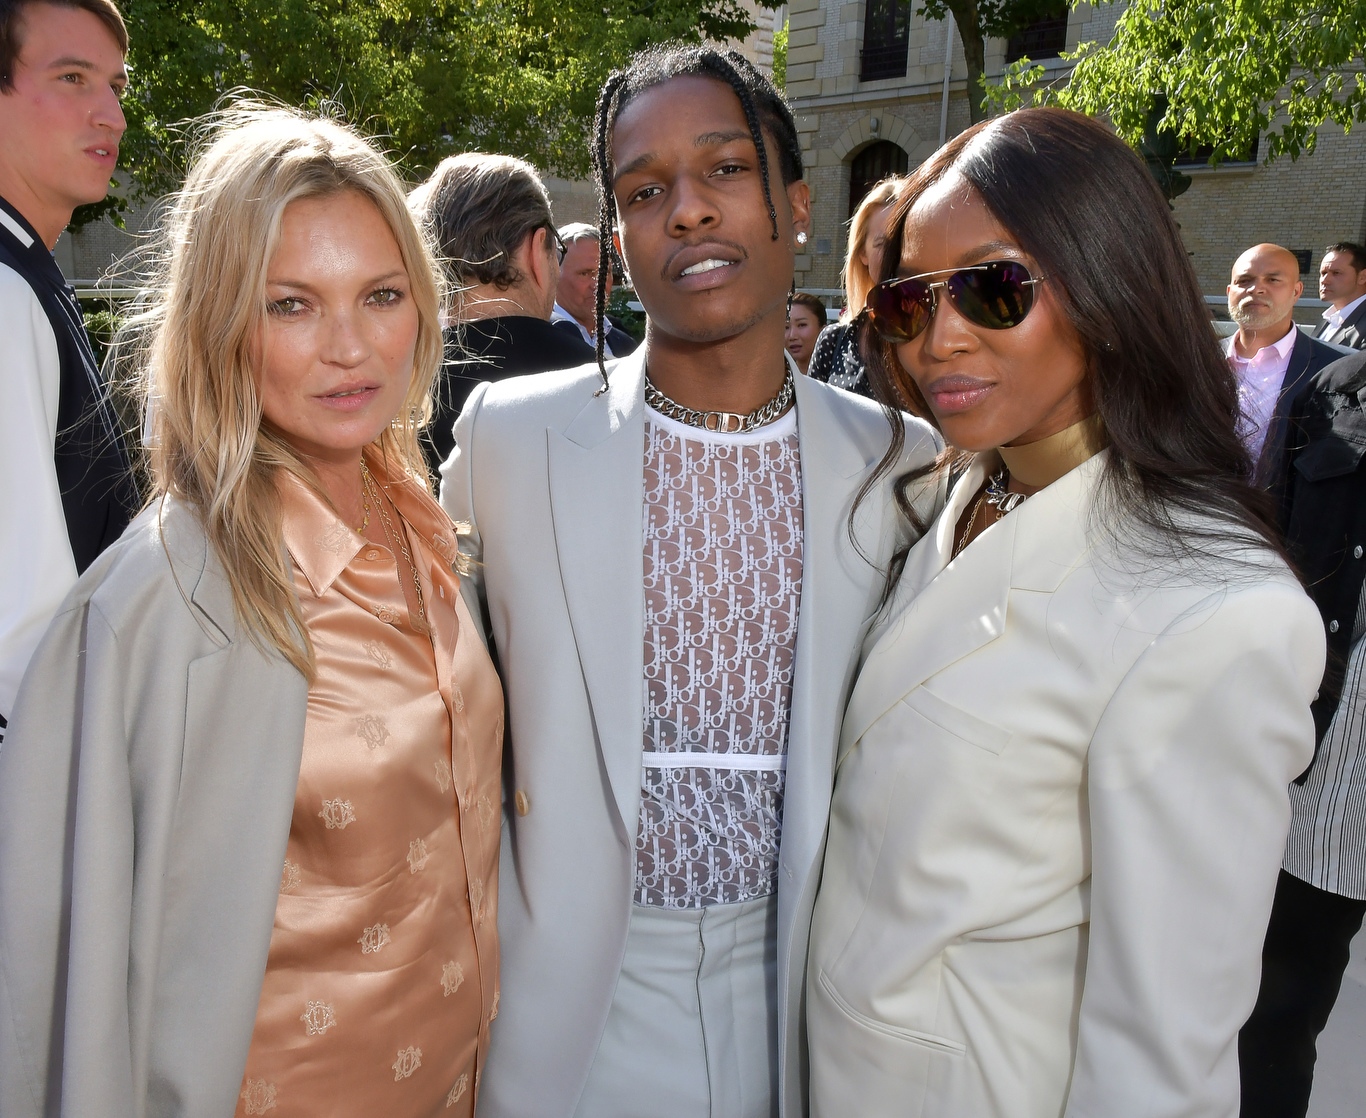 Kate Moss, ASAP Ricky and Naomi Campbell